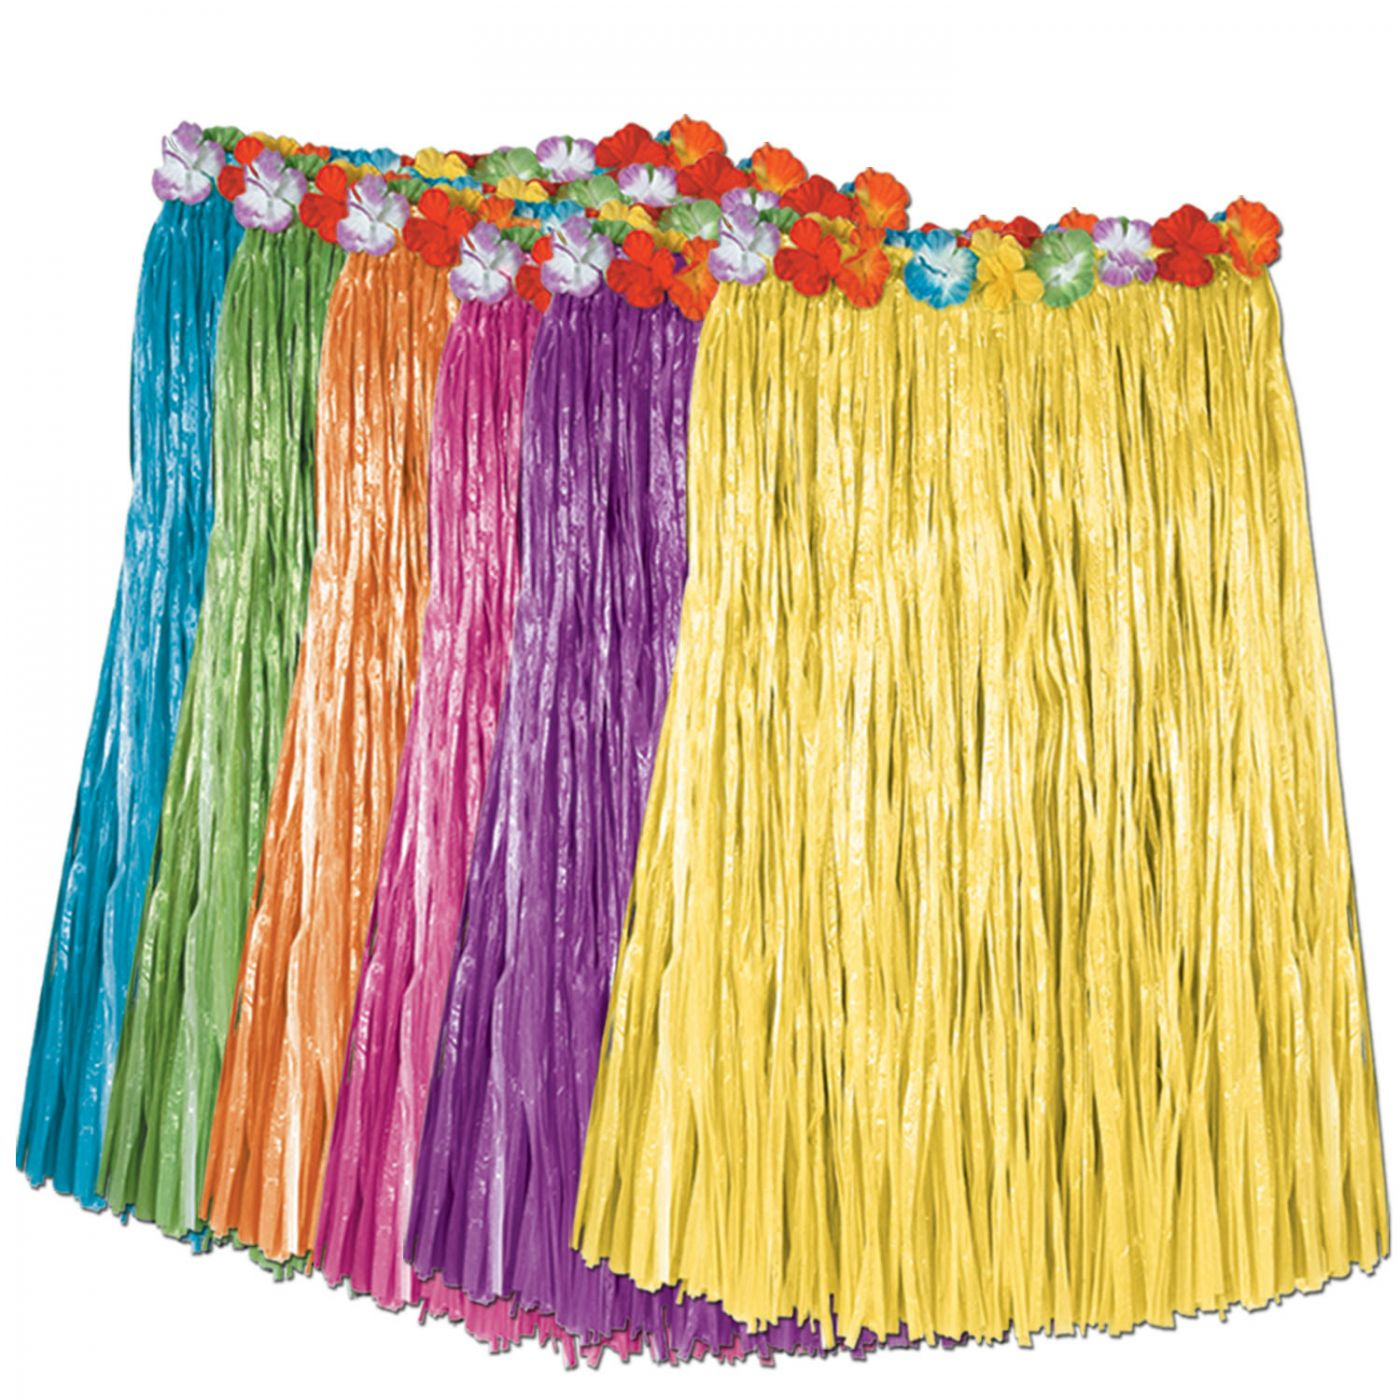 Image of Adult Artificial Grass Hula Skirts